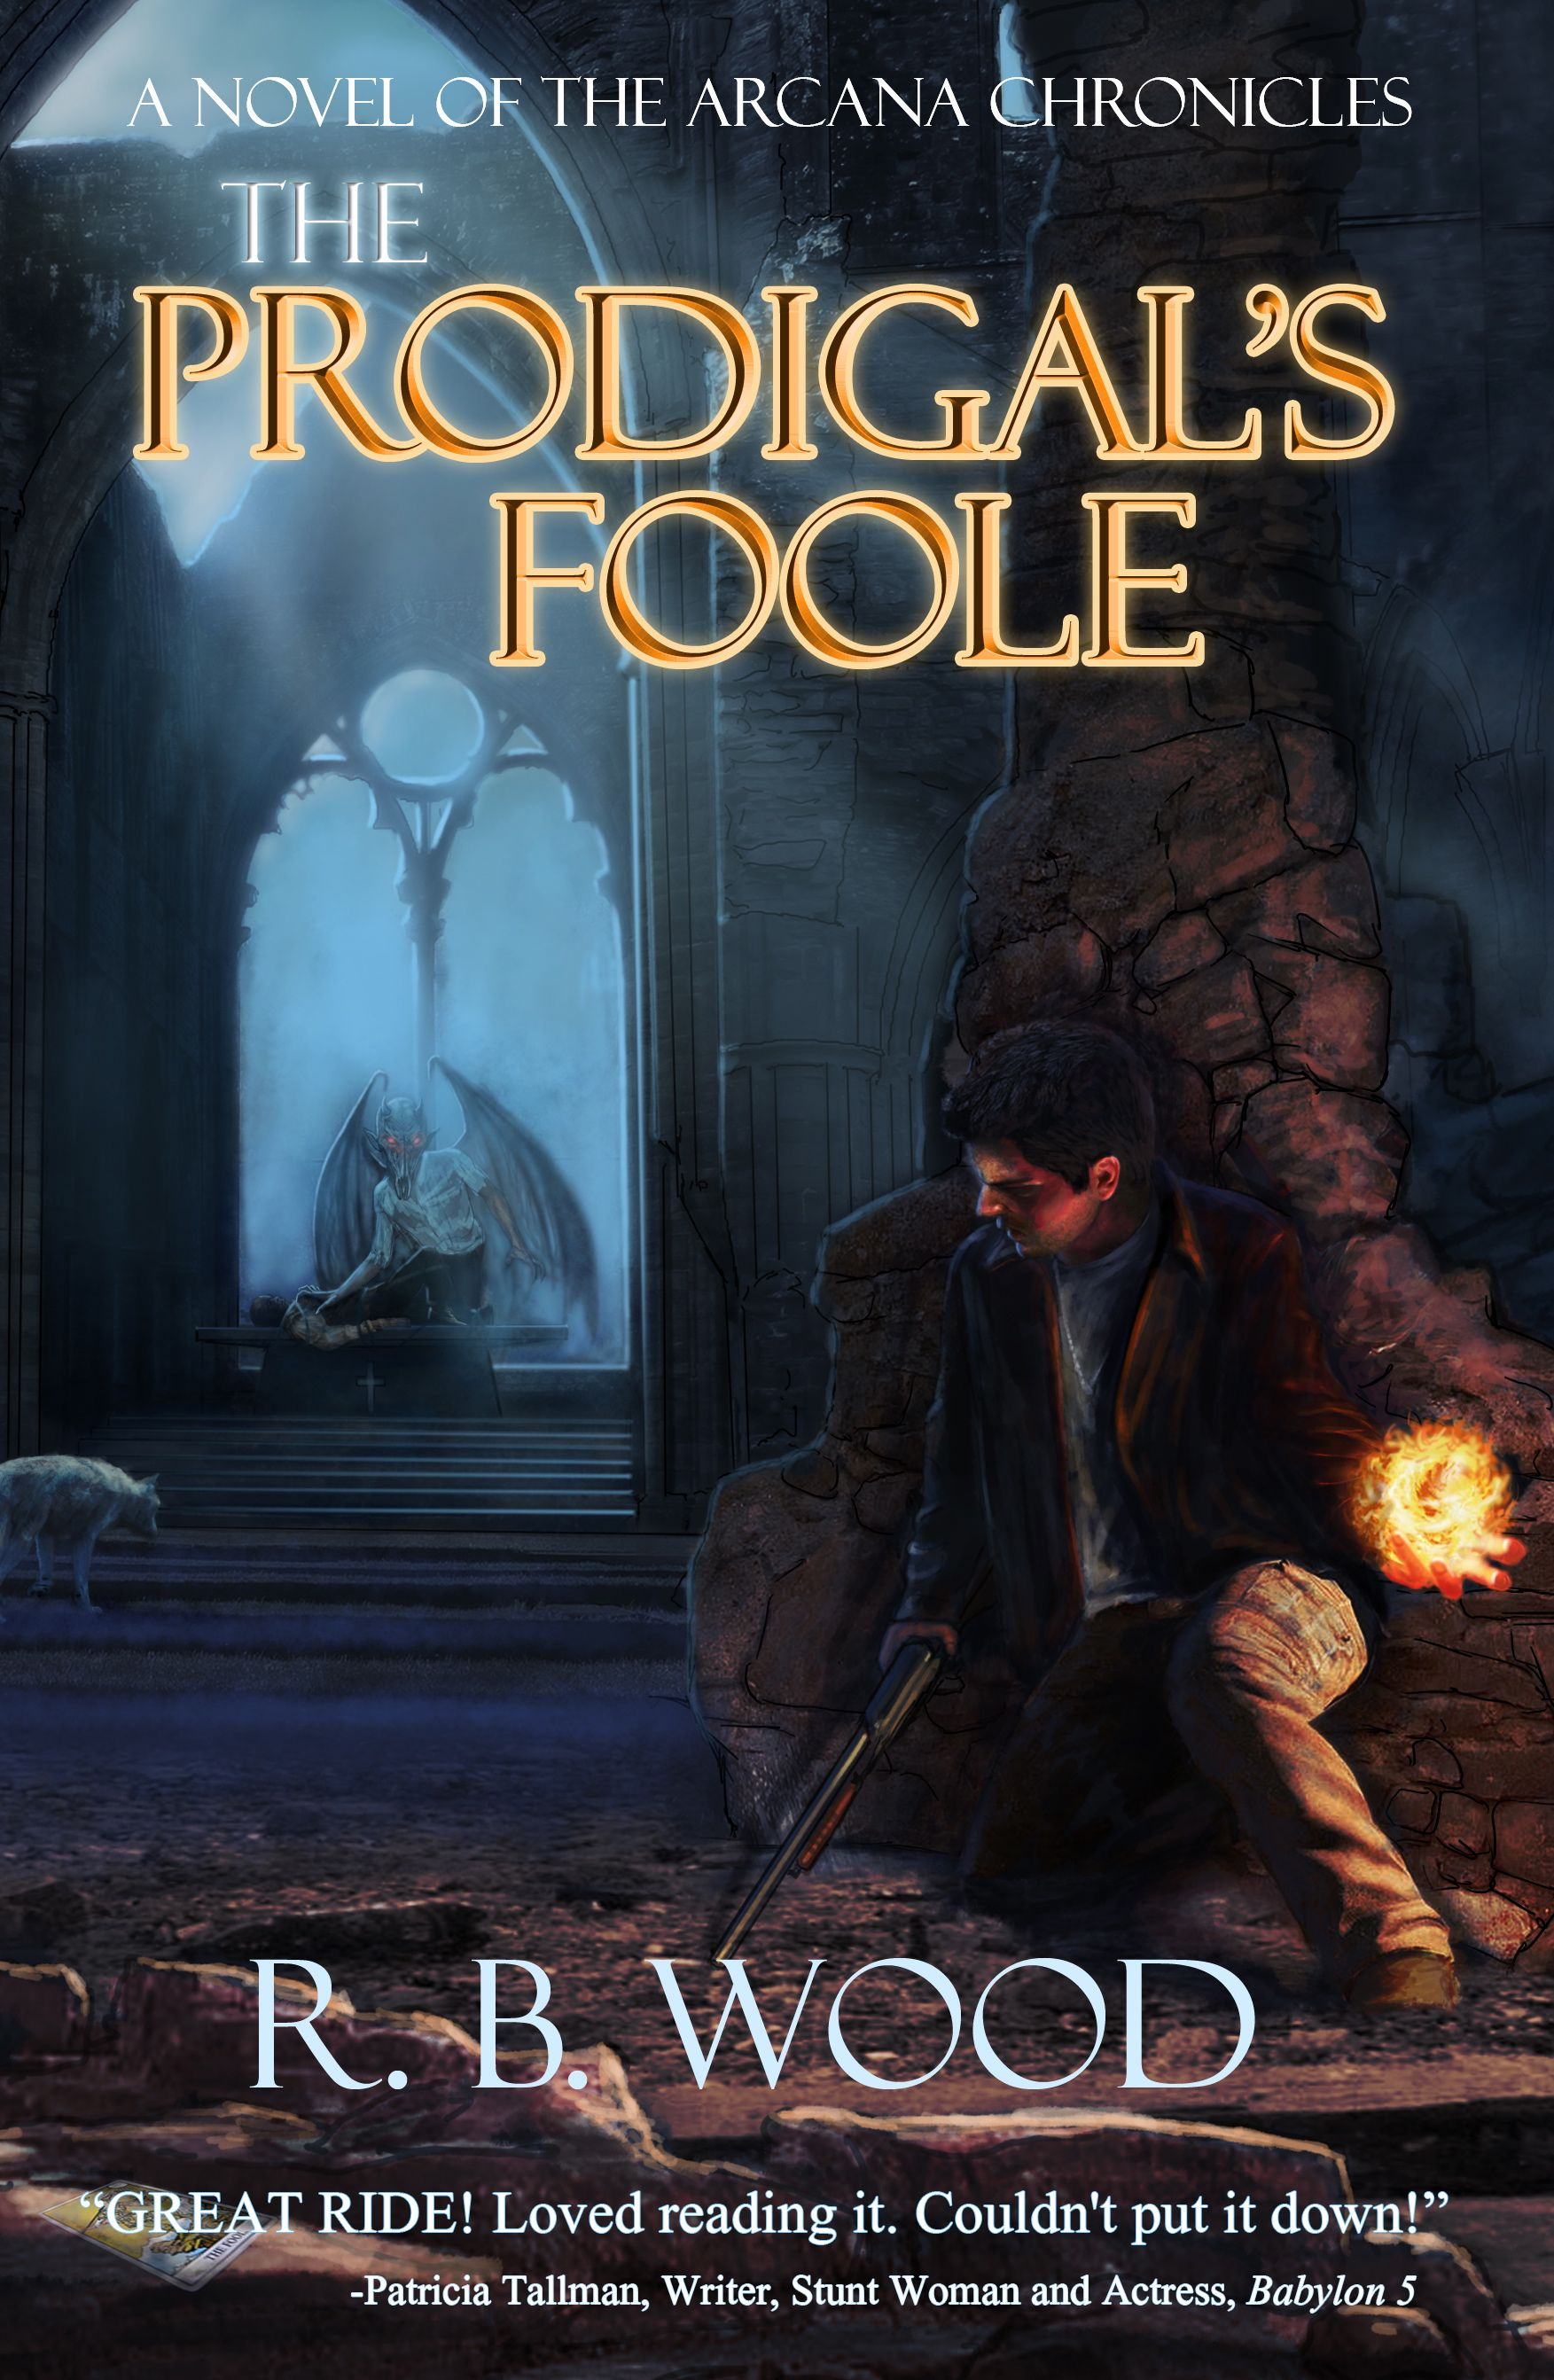 The Prodigal's Foole (A Novel of the Arcana Chronicles)